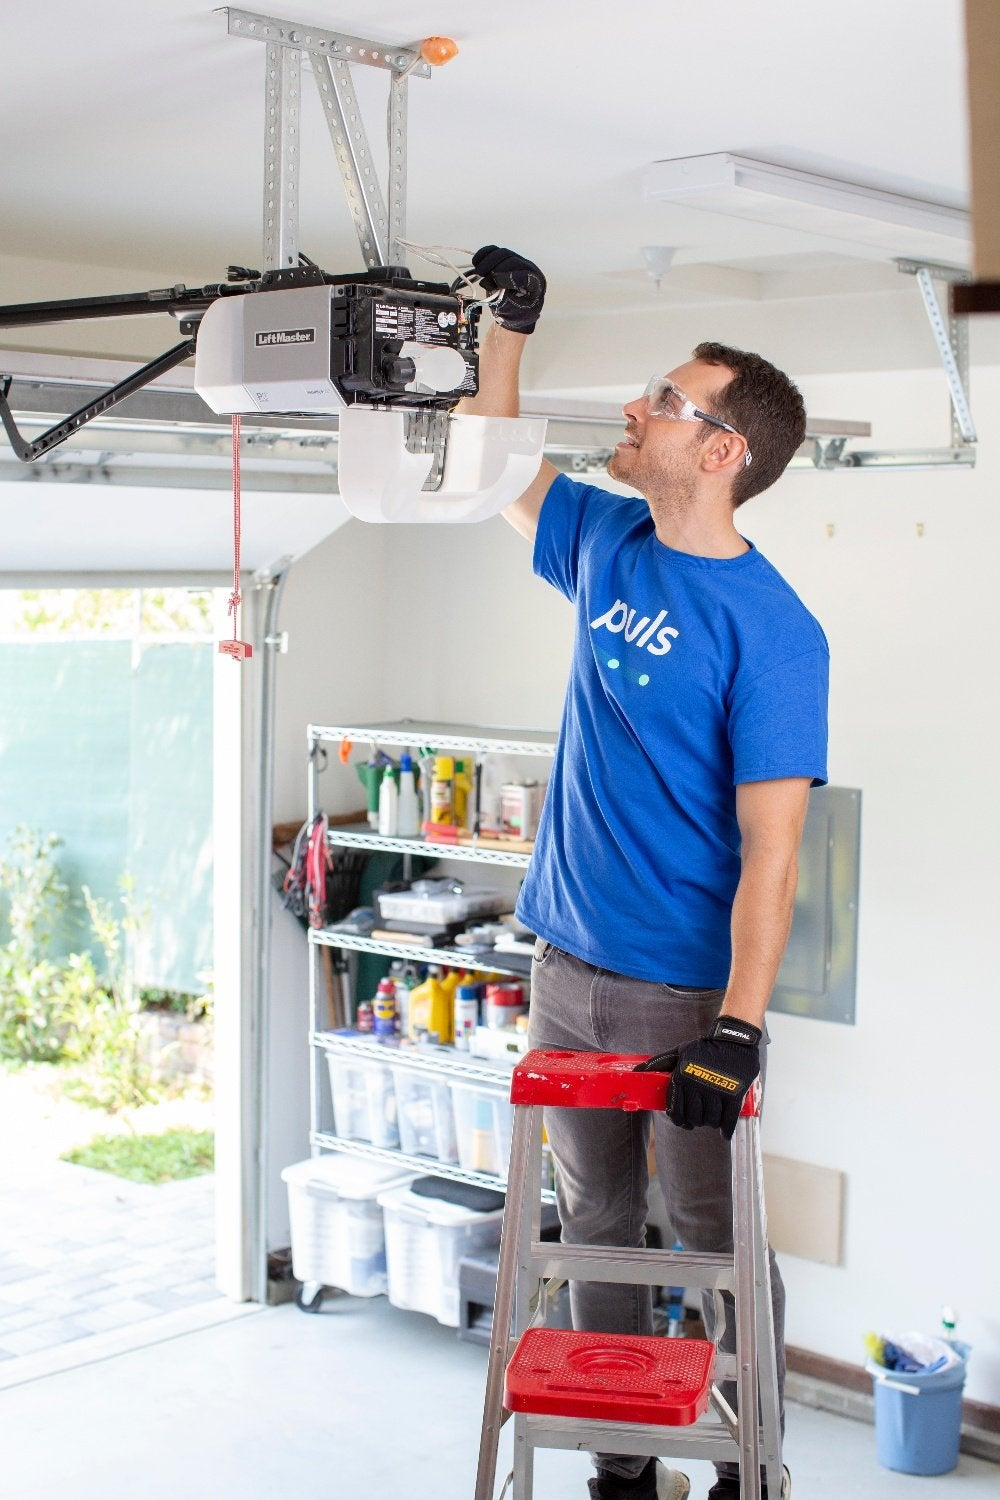 Garage Door Troubleshooting Tips for Checking the Motor Unit